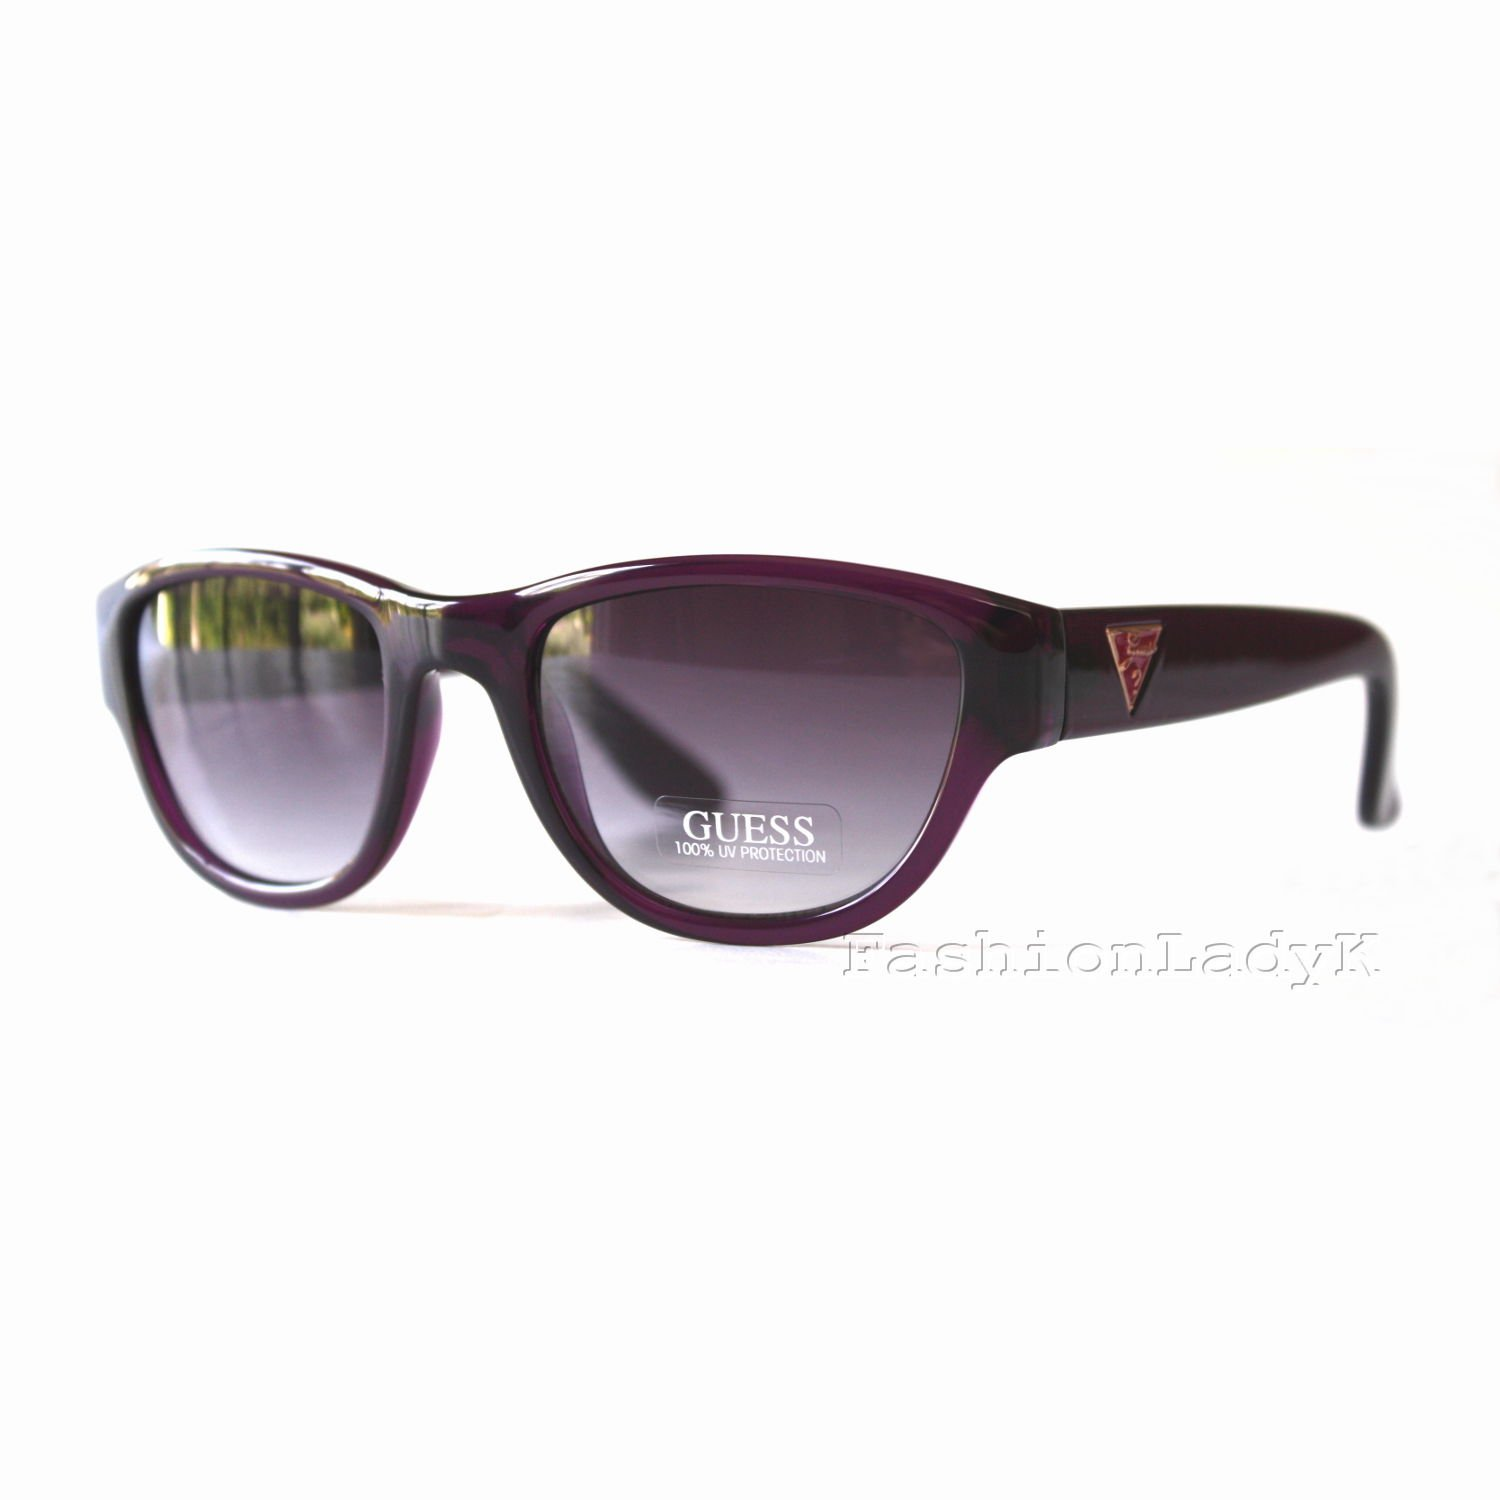 GUESS Women Raspberry Sunglasses GU7223 RSP-35 New w/ Case